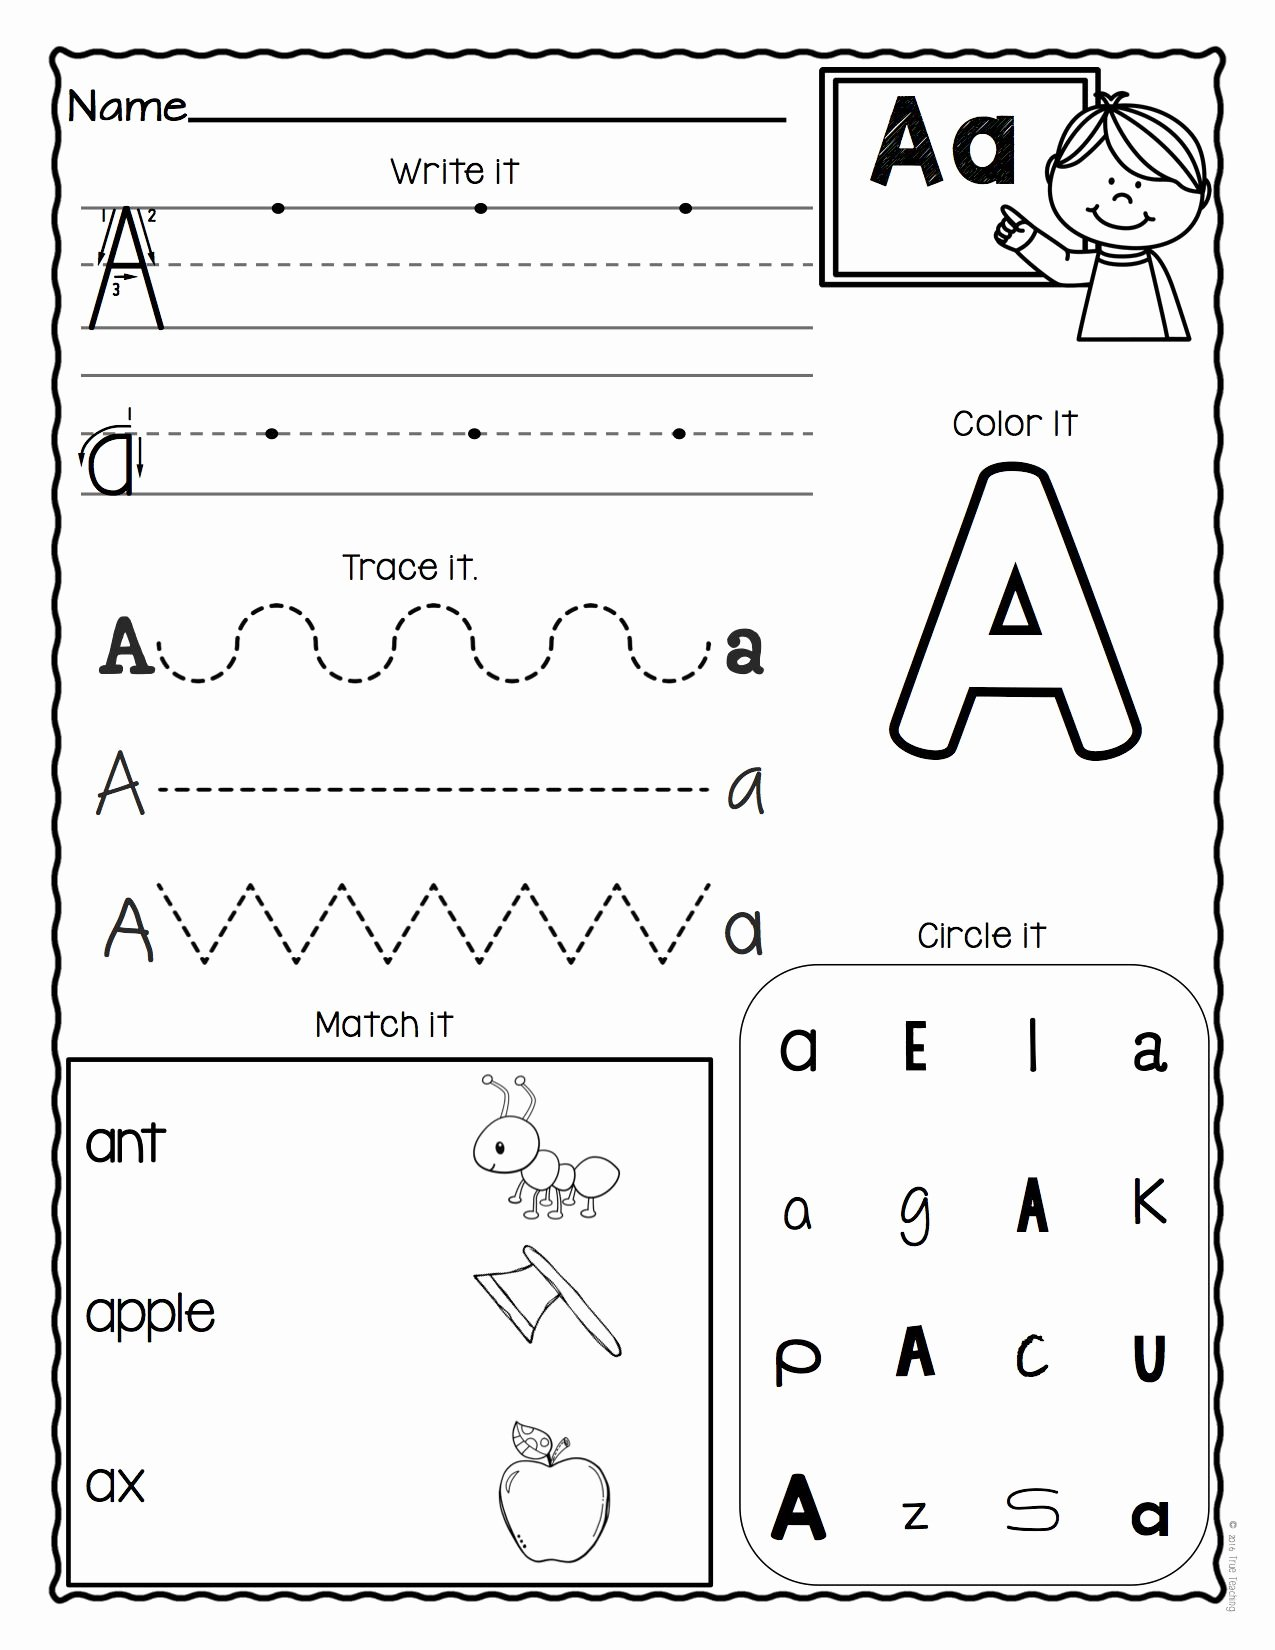 Learning Letters Worksheets for Preschoolers Lovely A Z Letter Worksheets Set 3